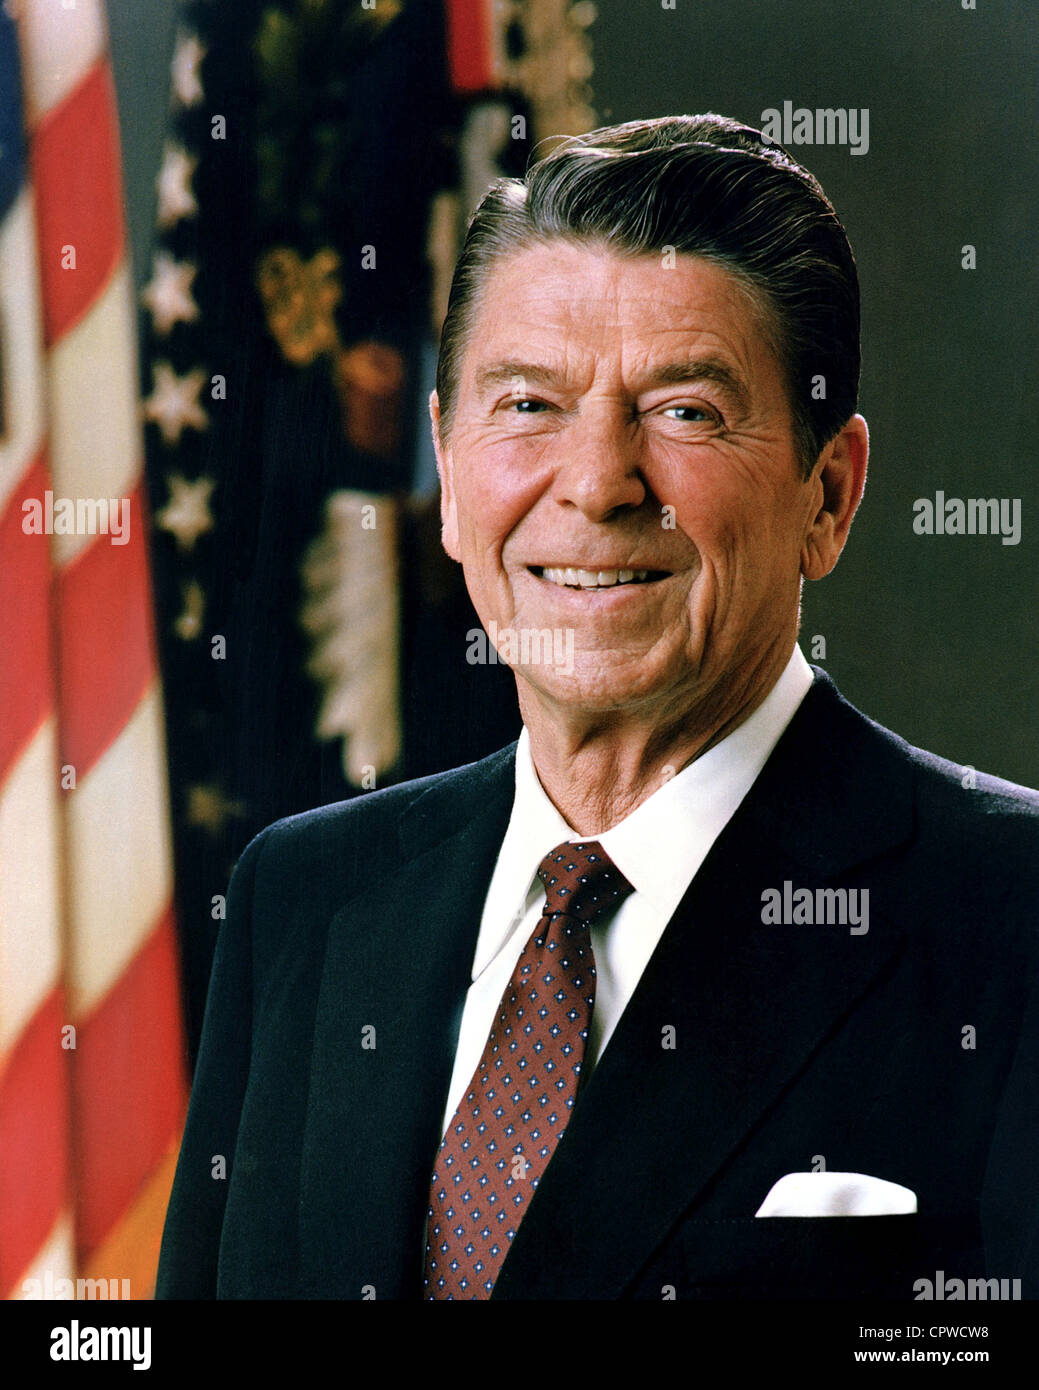 Ronald Reagan, 40th President of the United States Ronald Reagan - Stock Image